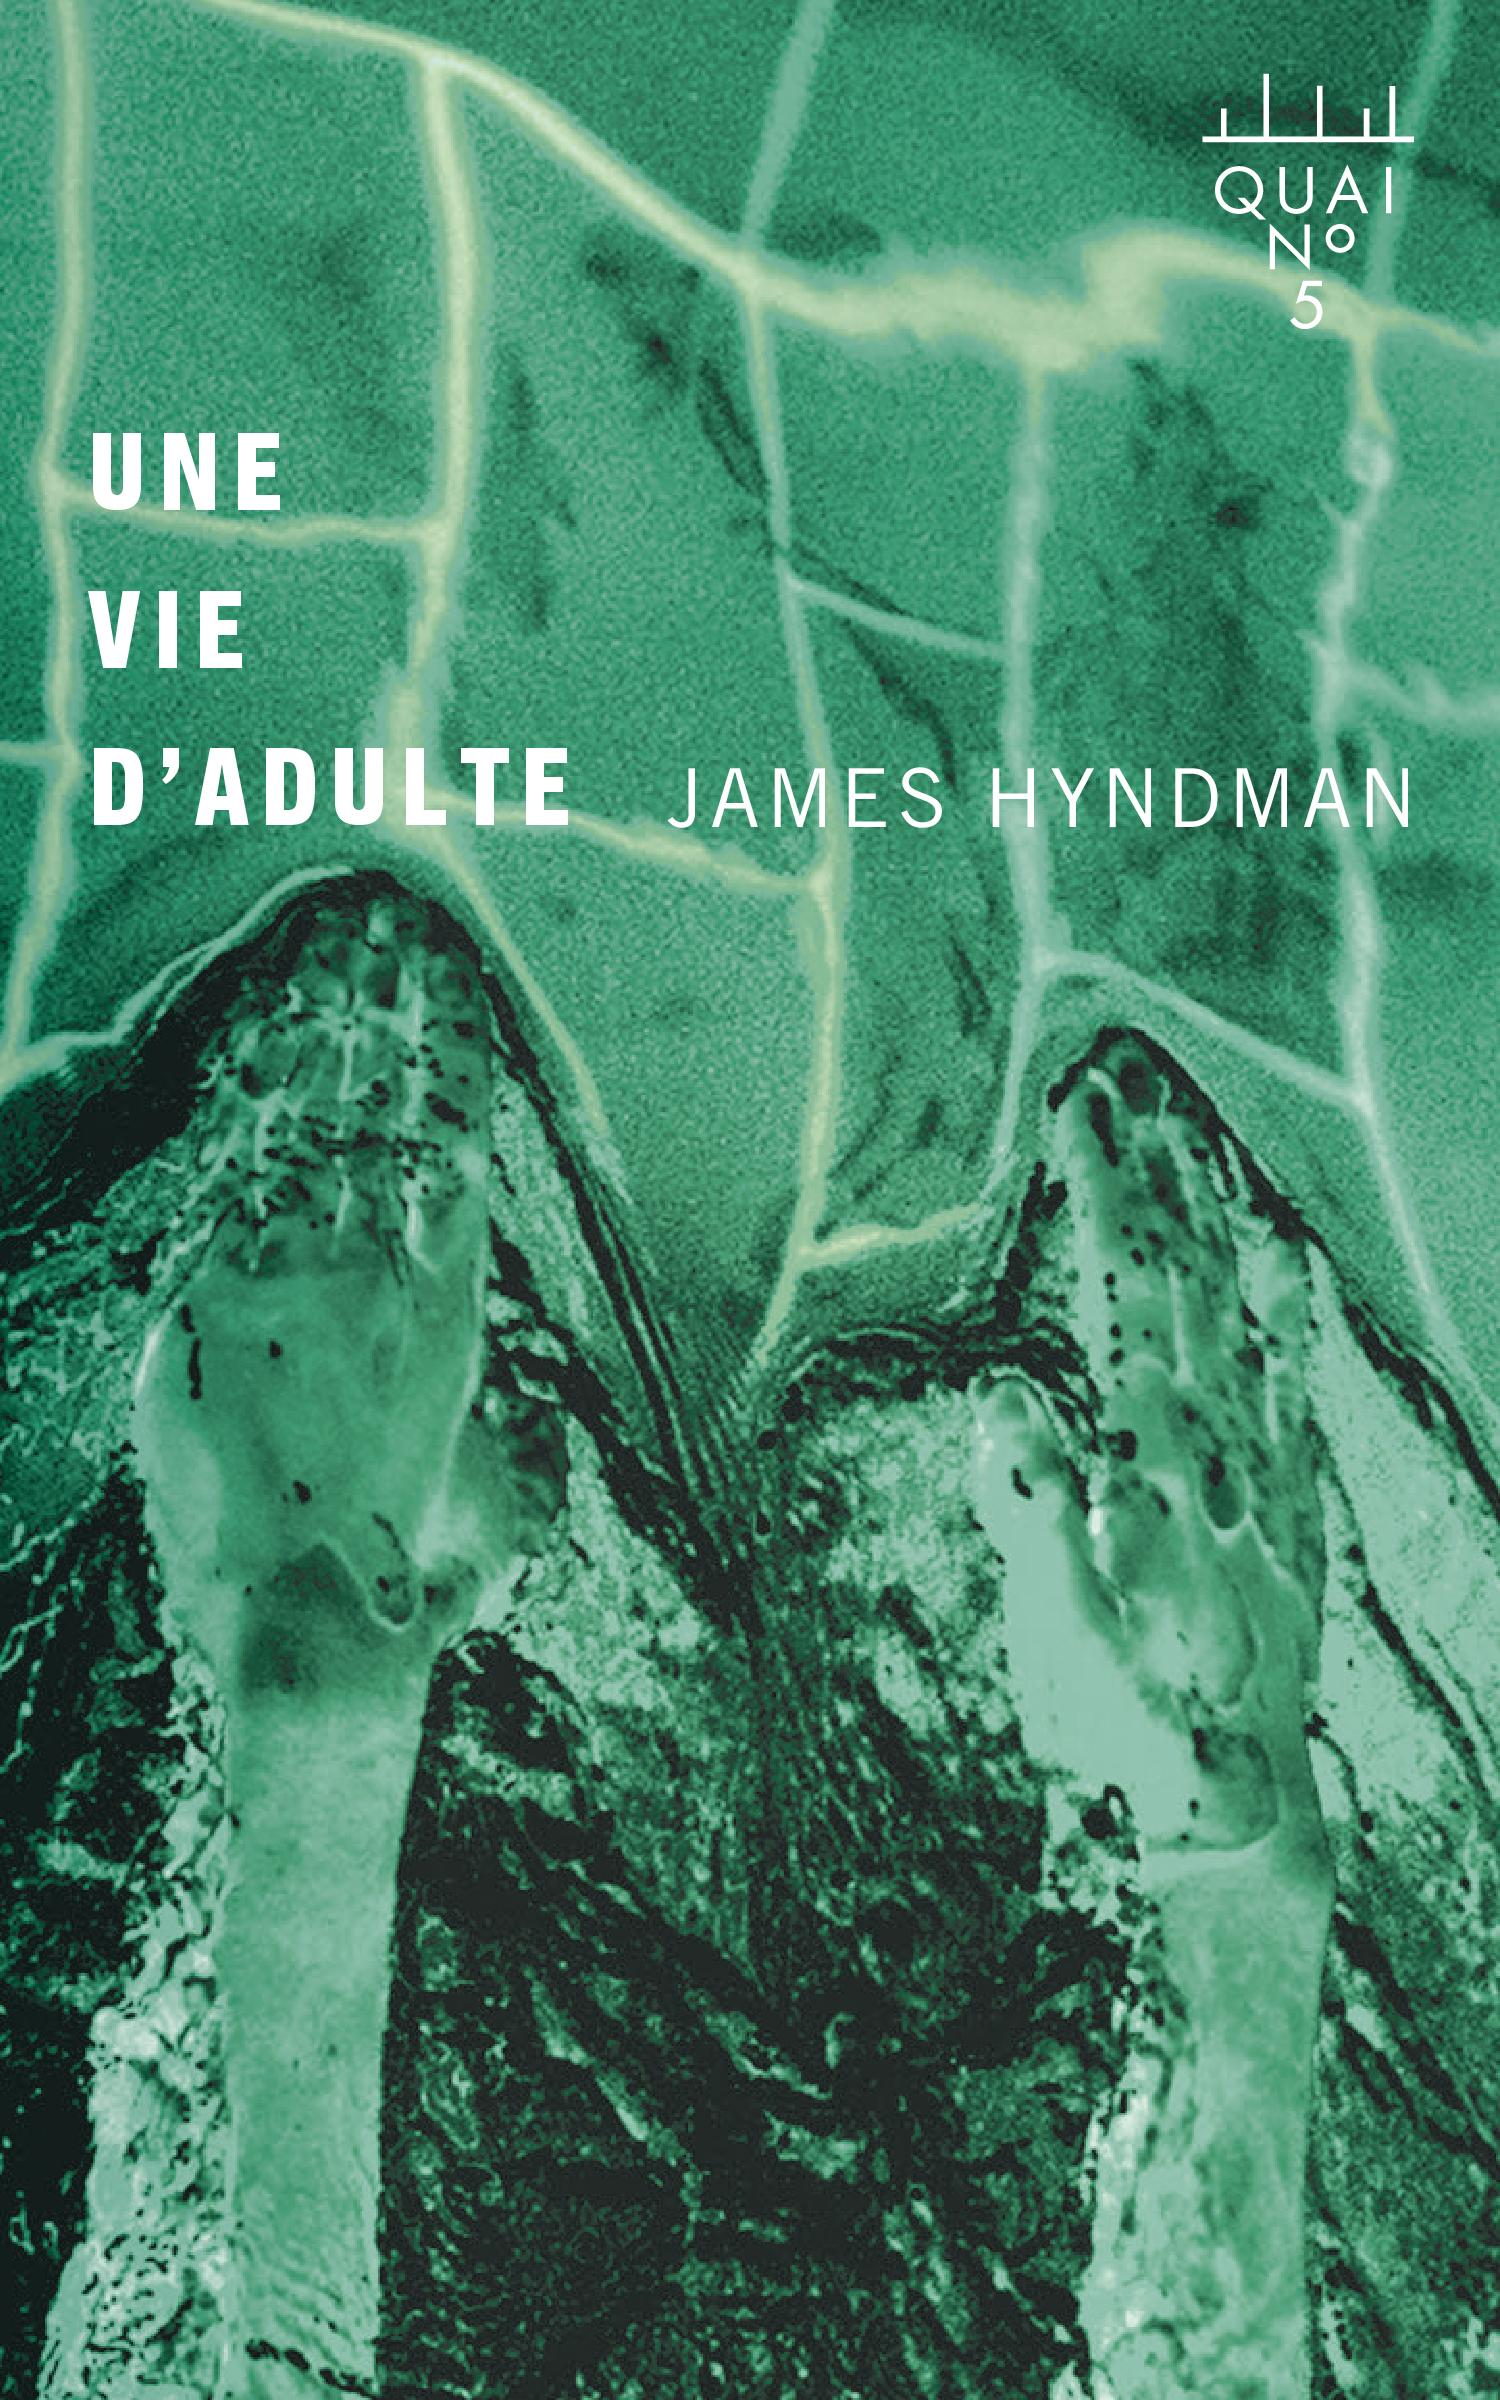 Une vie d'adulte - James Hyndman